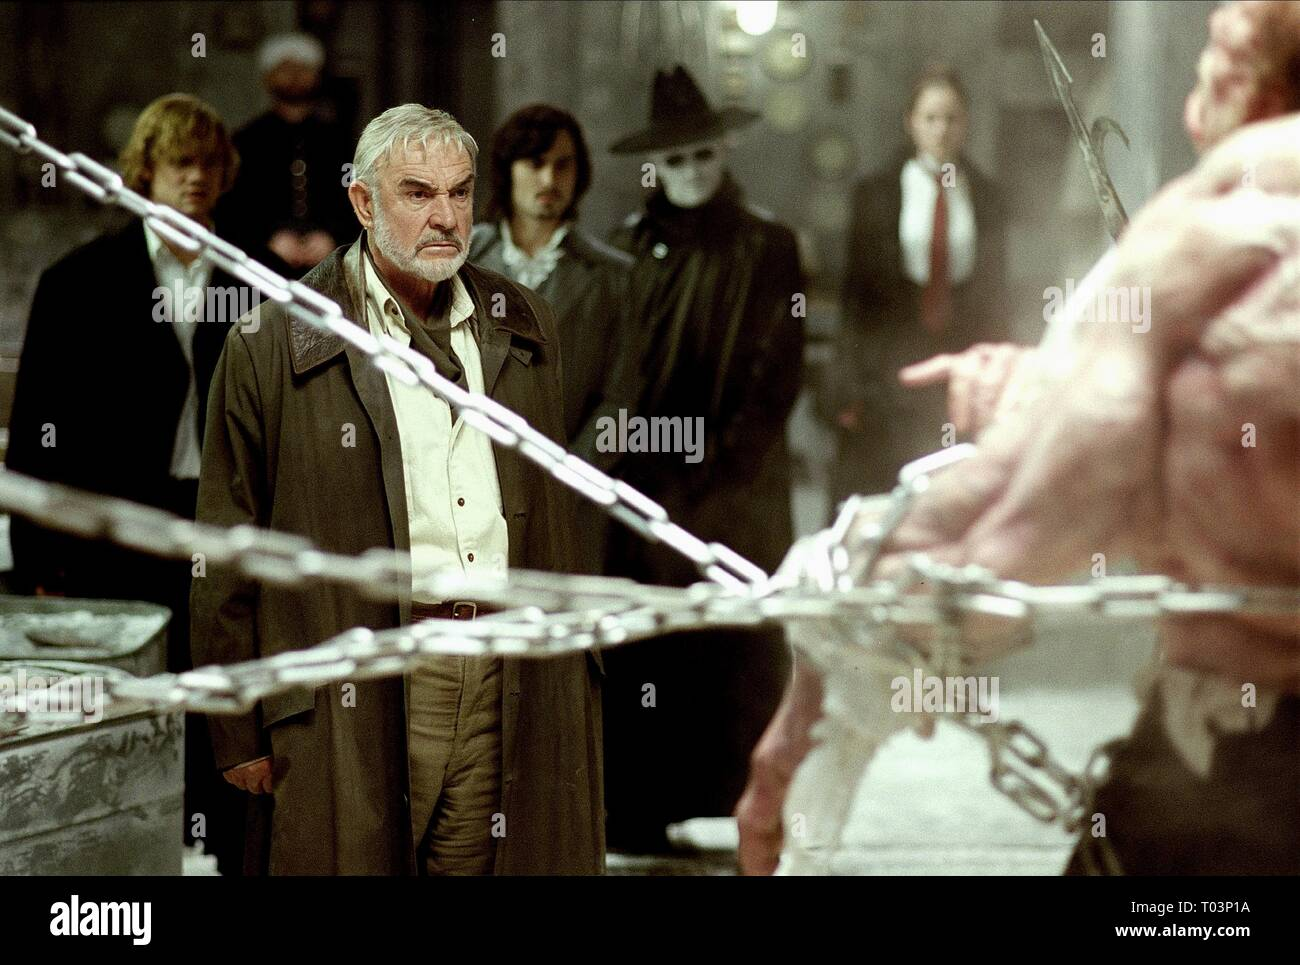 Sean Connery The League Of Extraordinary Gentlemen 2003 Stock Photo Alamy